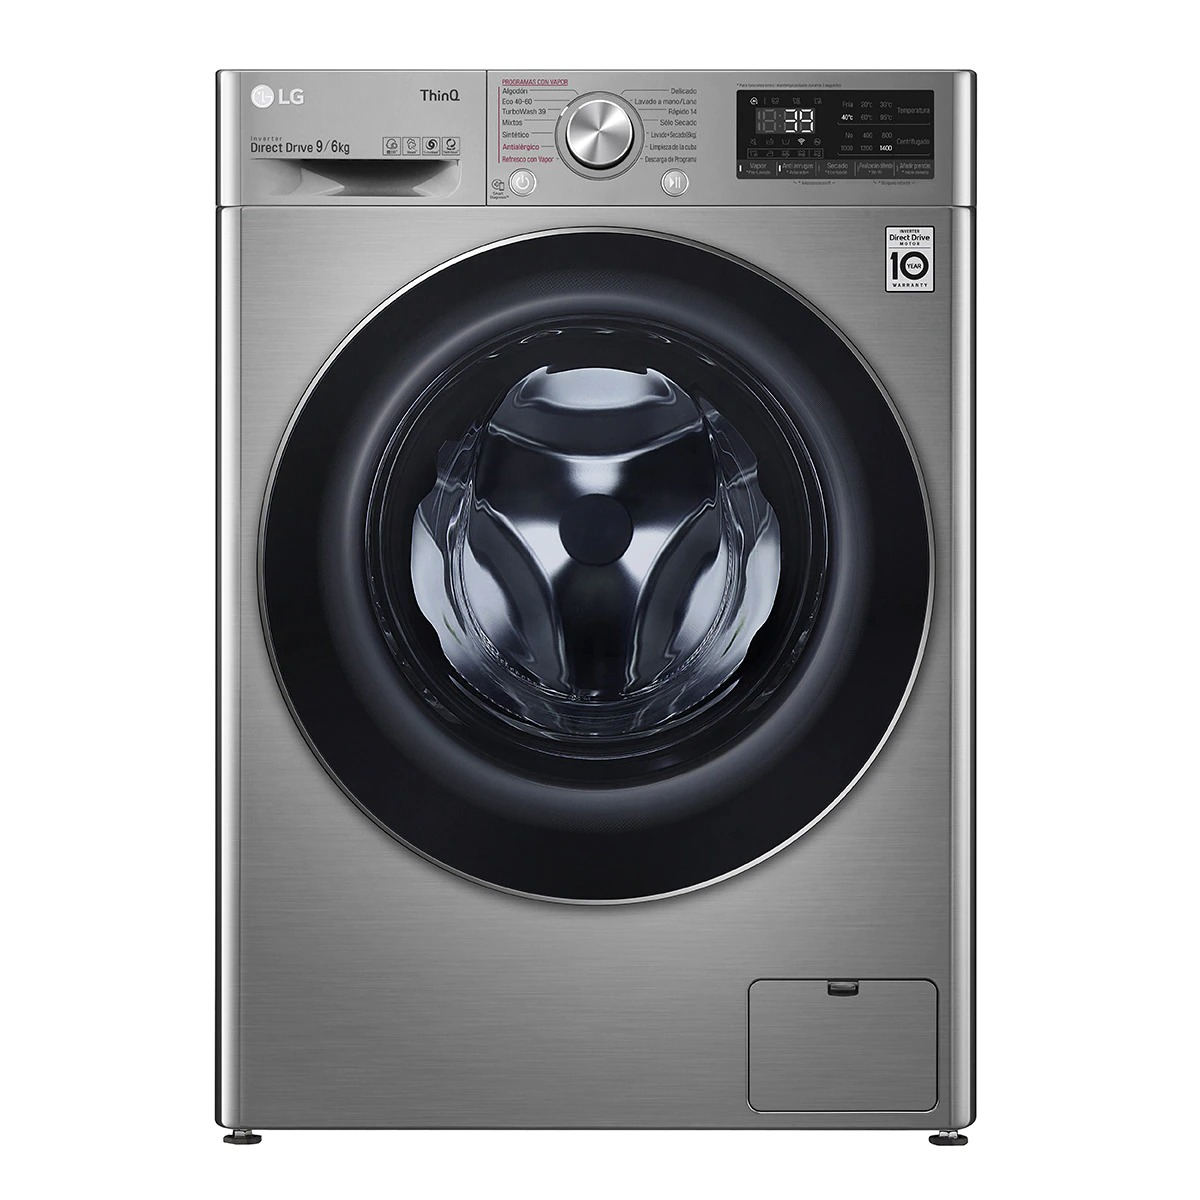 LG F4DV7009S2S 9 Kg and 1,400 rpm Smart Washer Dryer